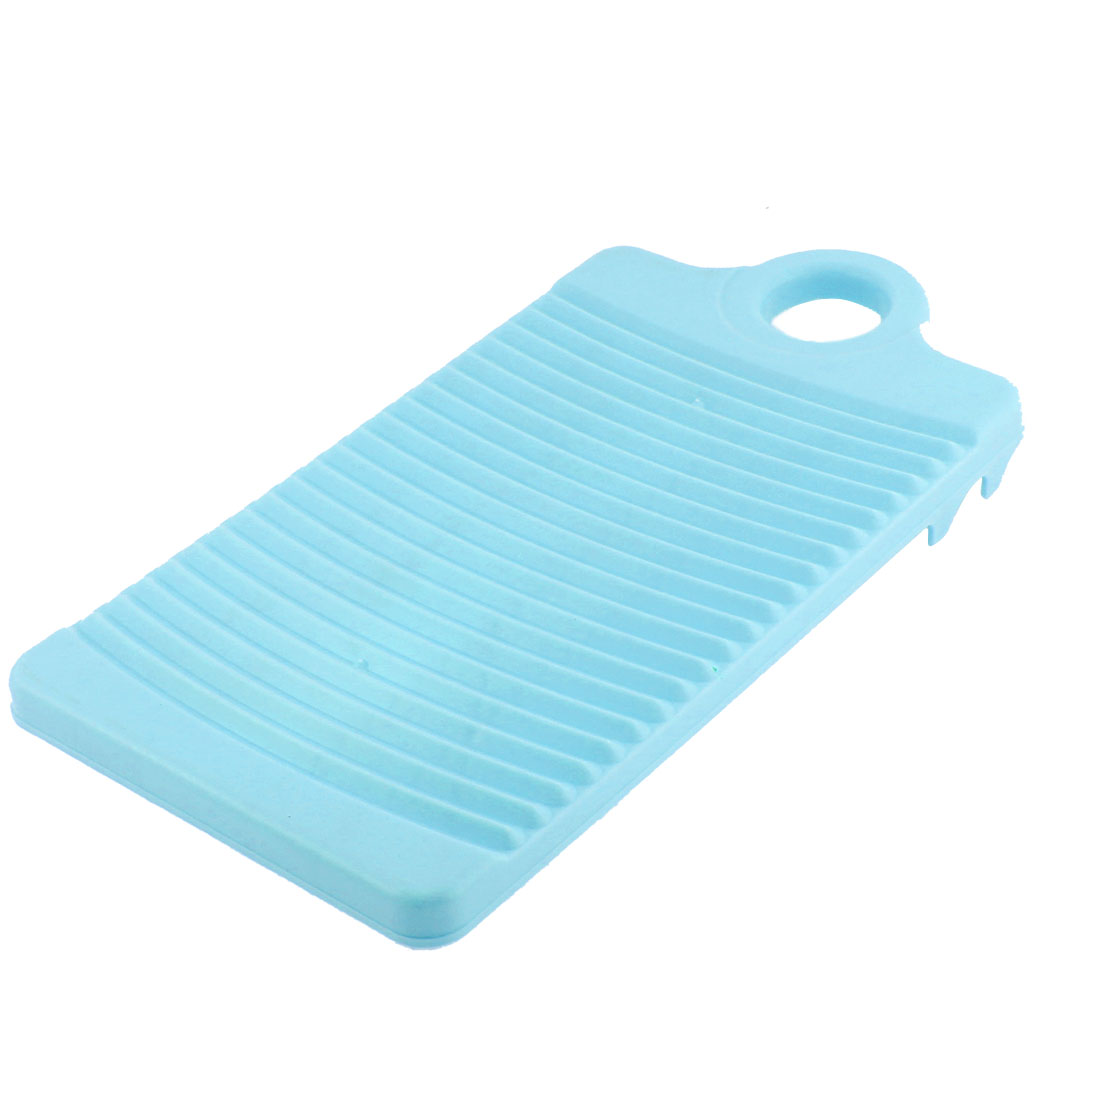 Plastic Rectangle Washboard Clothes Washing Board 315mm Length Light Green